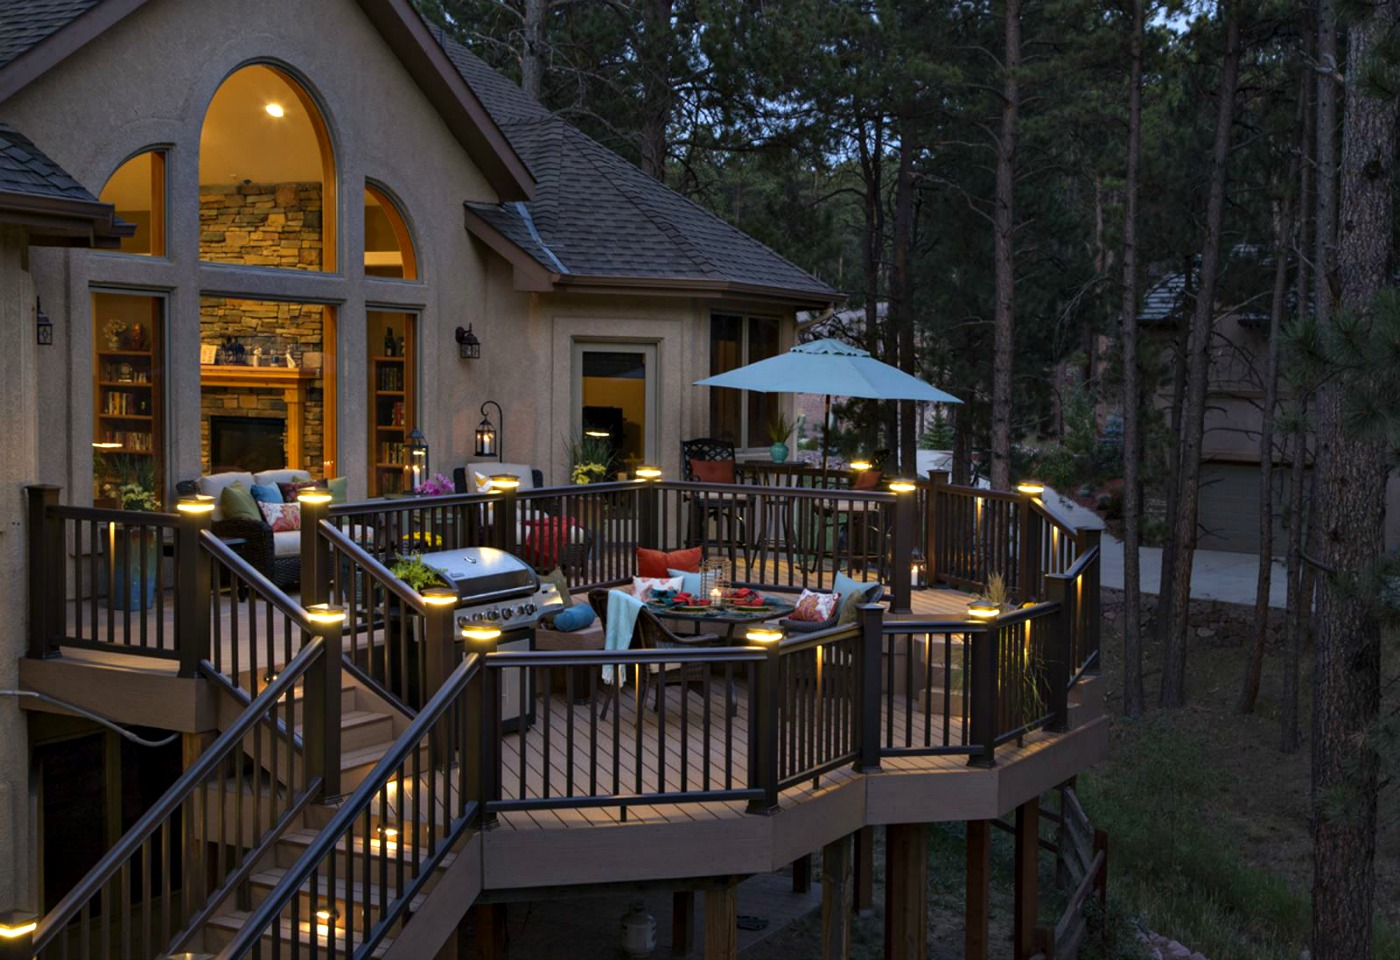 The Top 4 Most Beautiful And Useful Deck Lighting Types To Consider Archadeck Outdoor Living